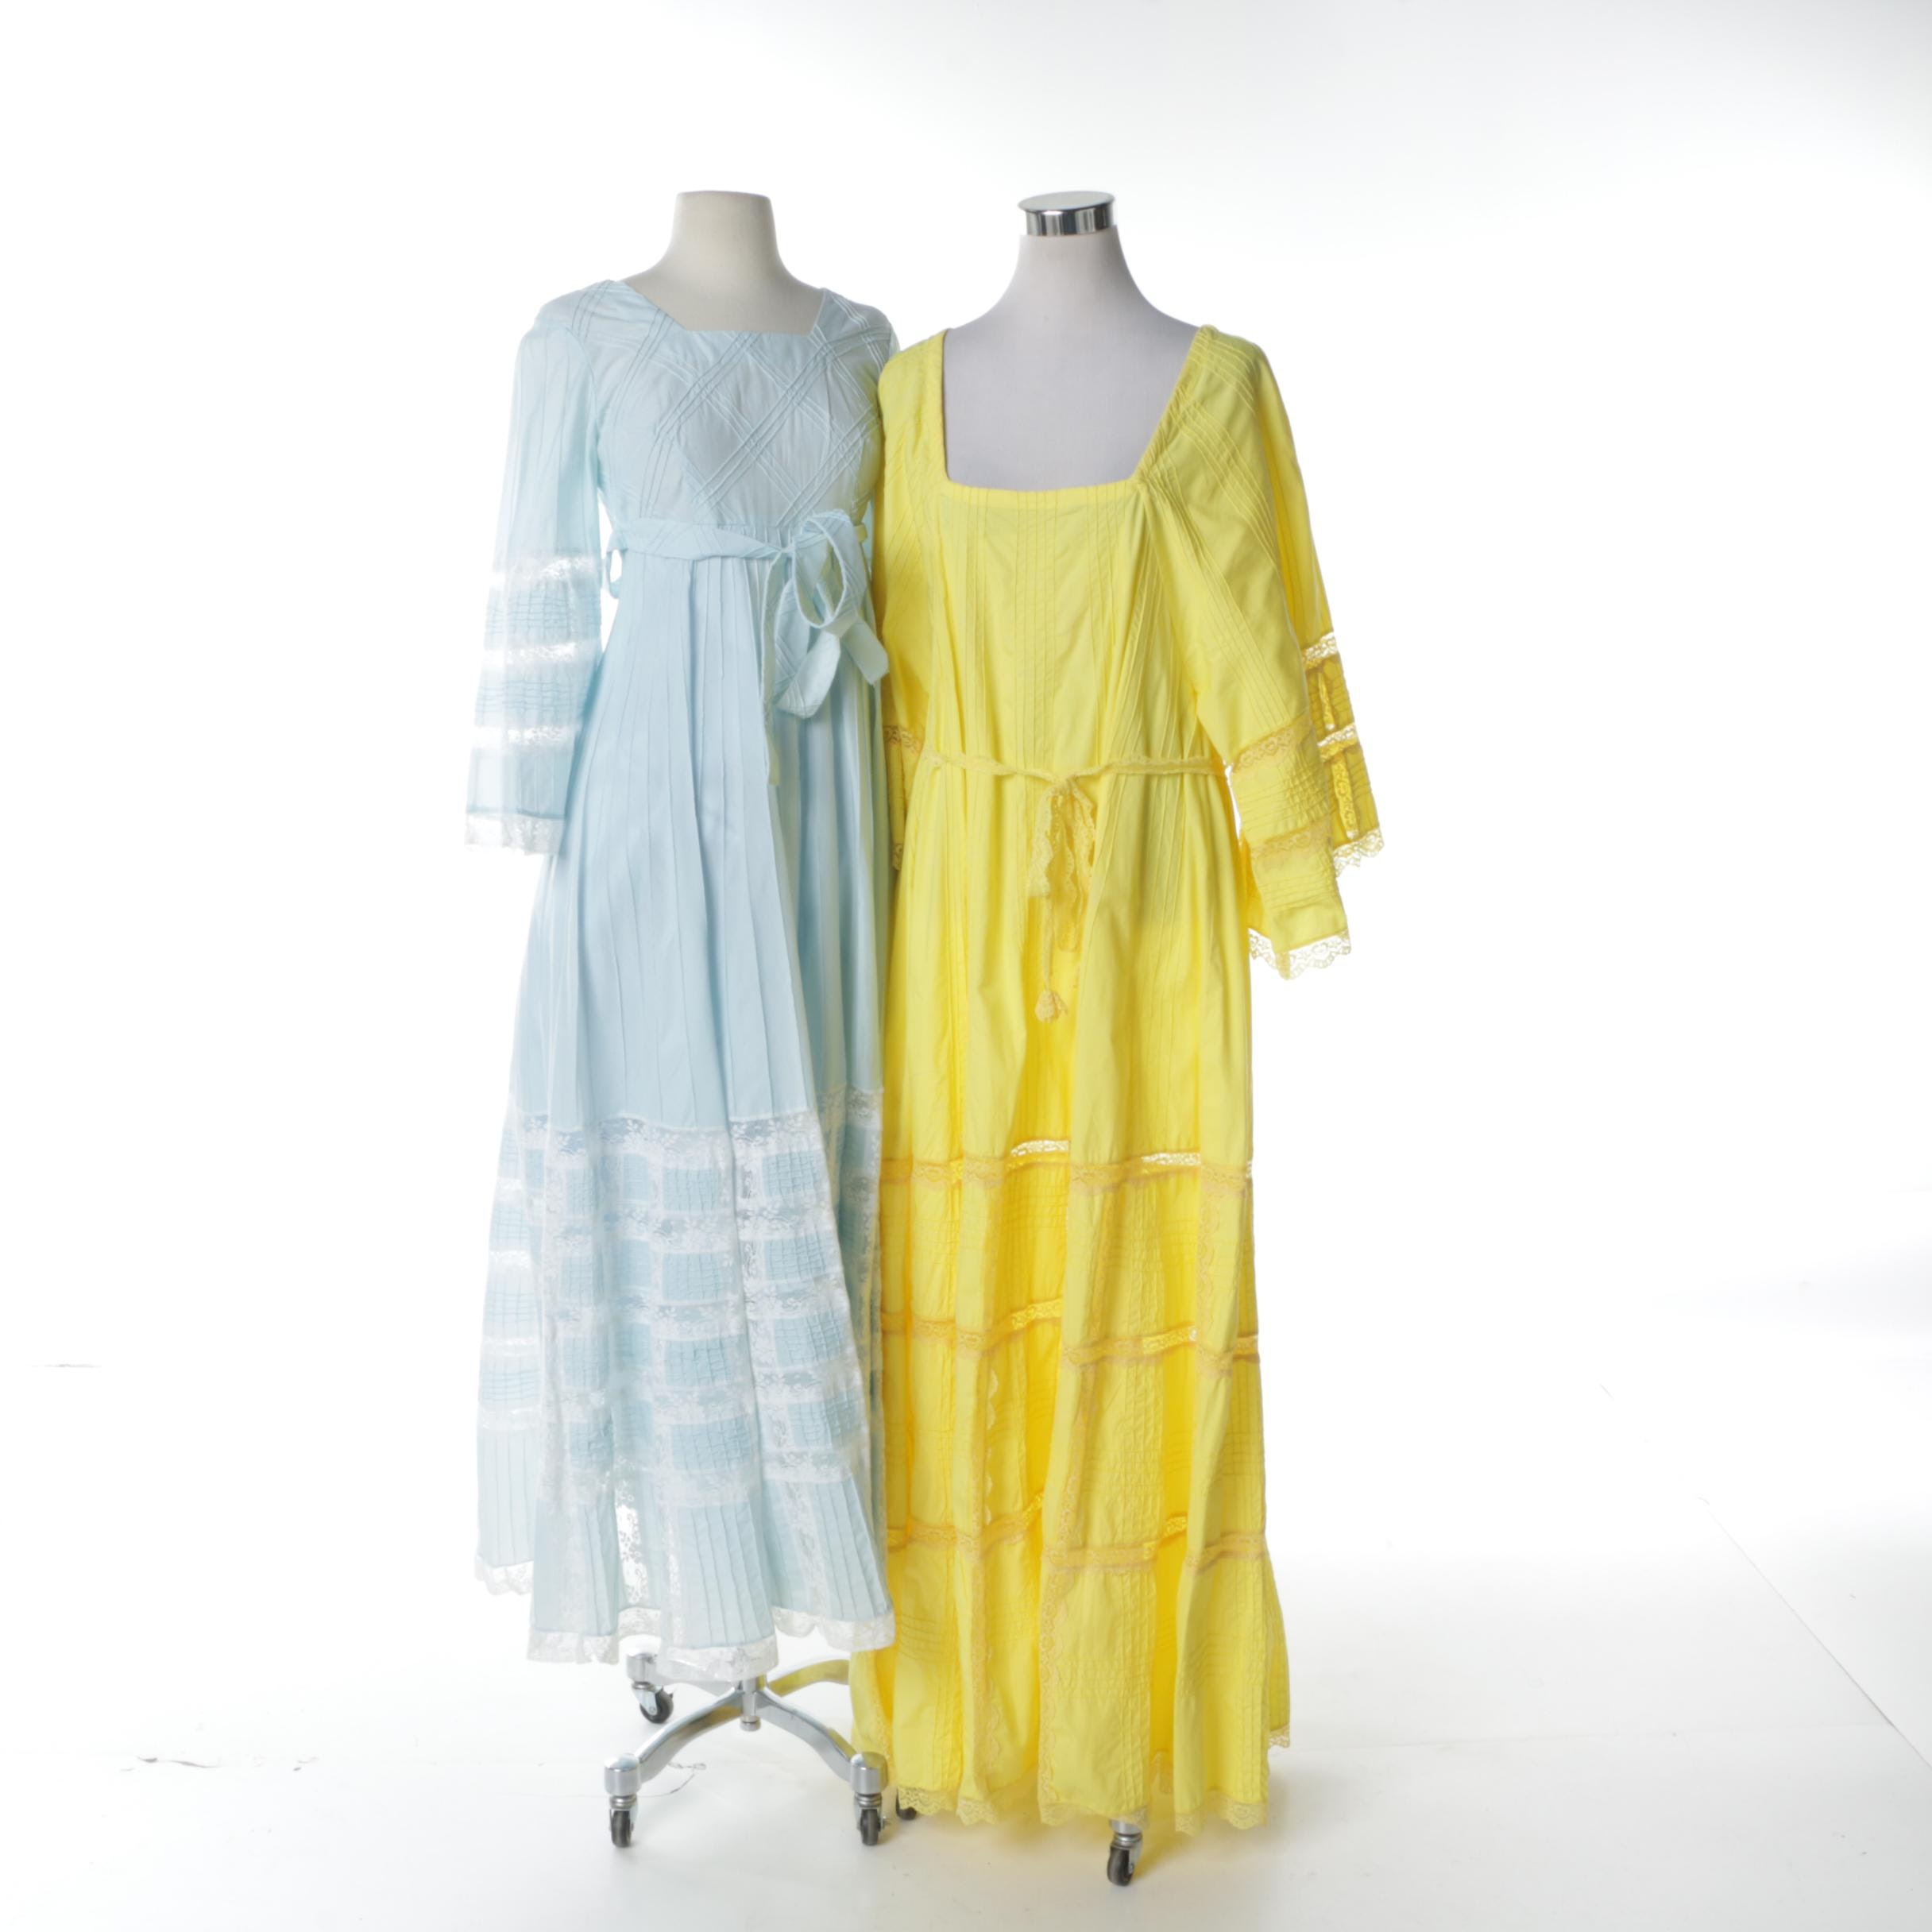 1970s Mexican Lace and Cotton Maxi Dresses